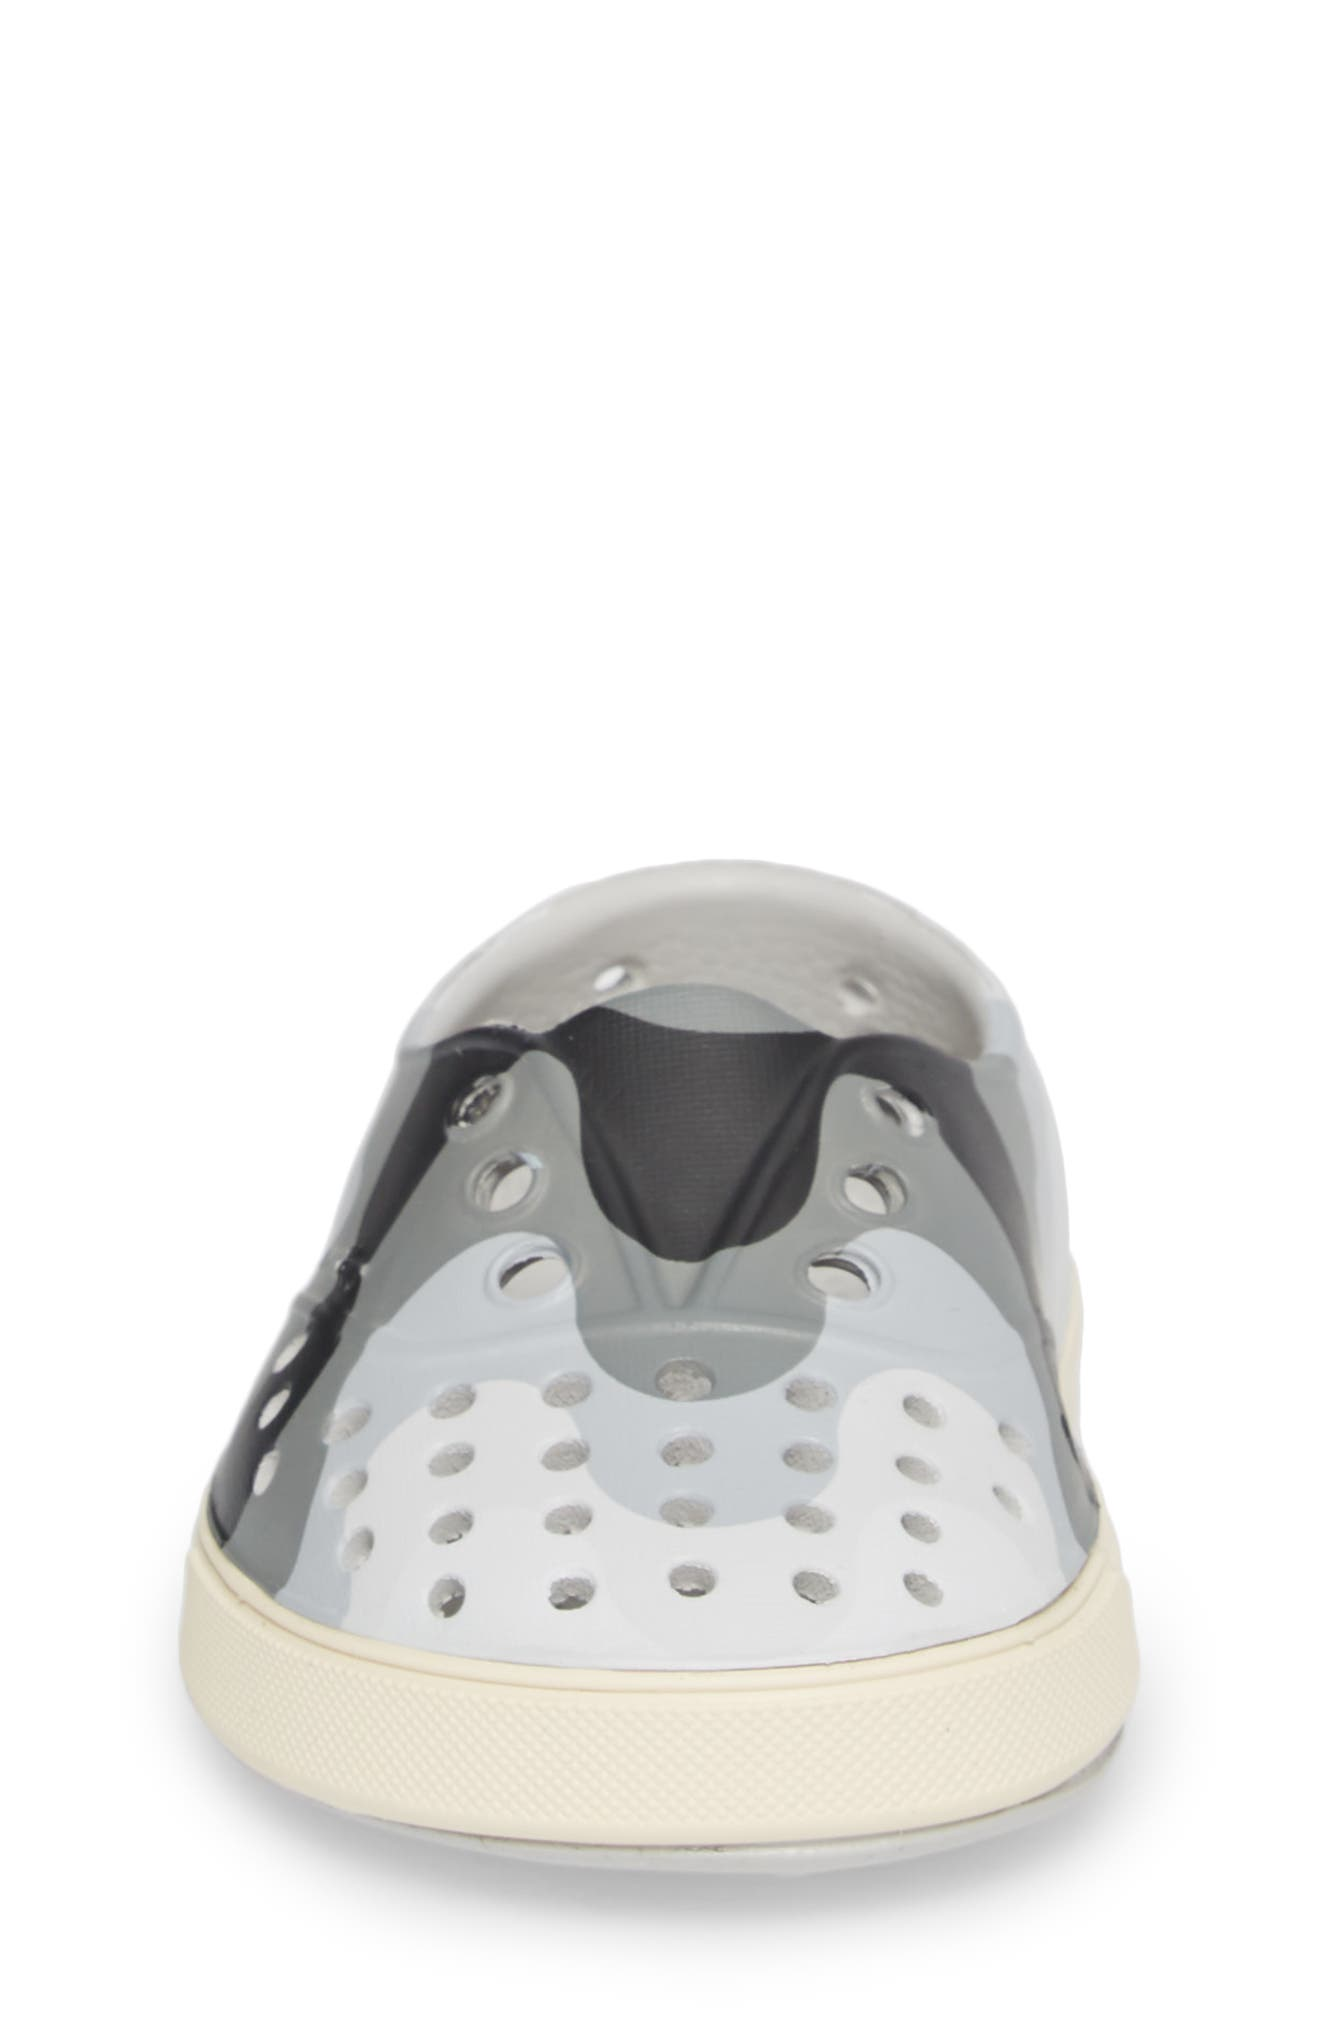 NATIVE SHOES,                             'Miller' Water Friendly Perforated Sneaker,                             Alternate thumbnail 4, color,                             022